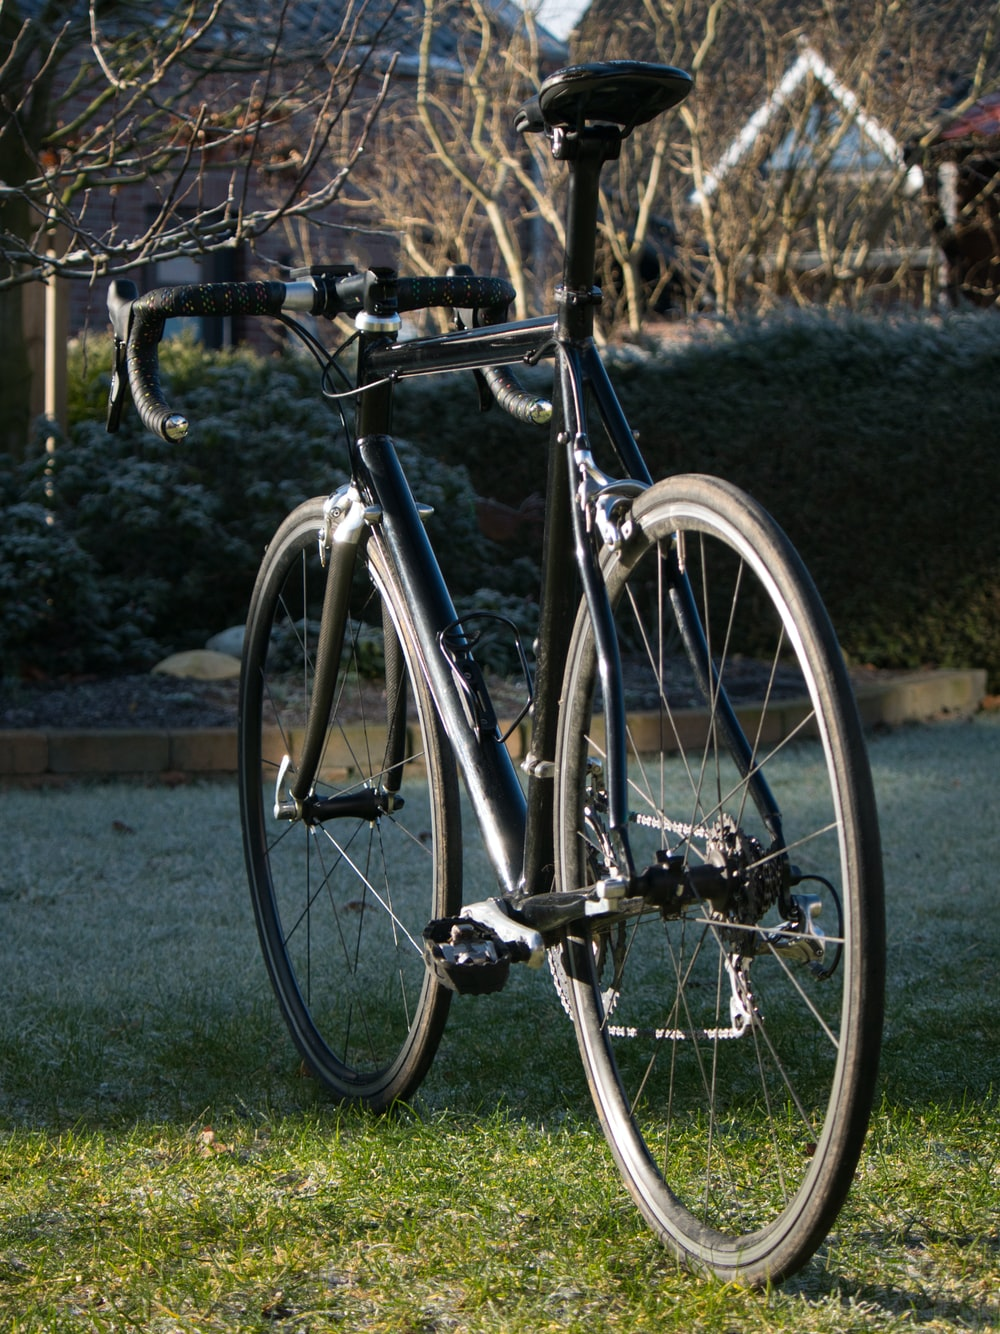 black and silver bicycle on green grass field during daytime